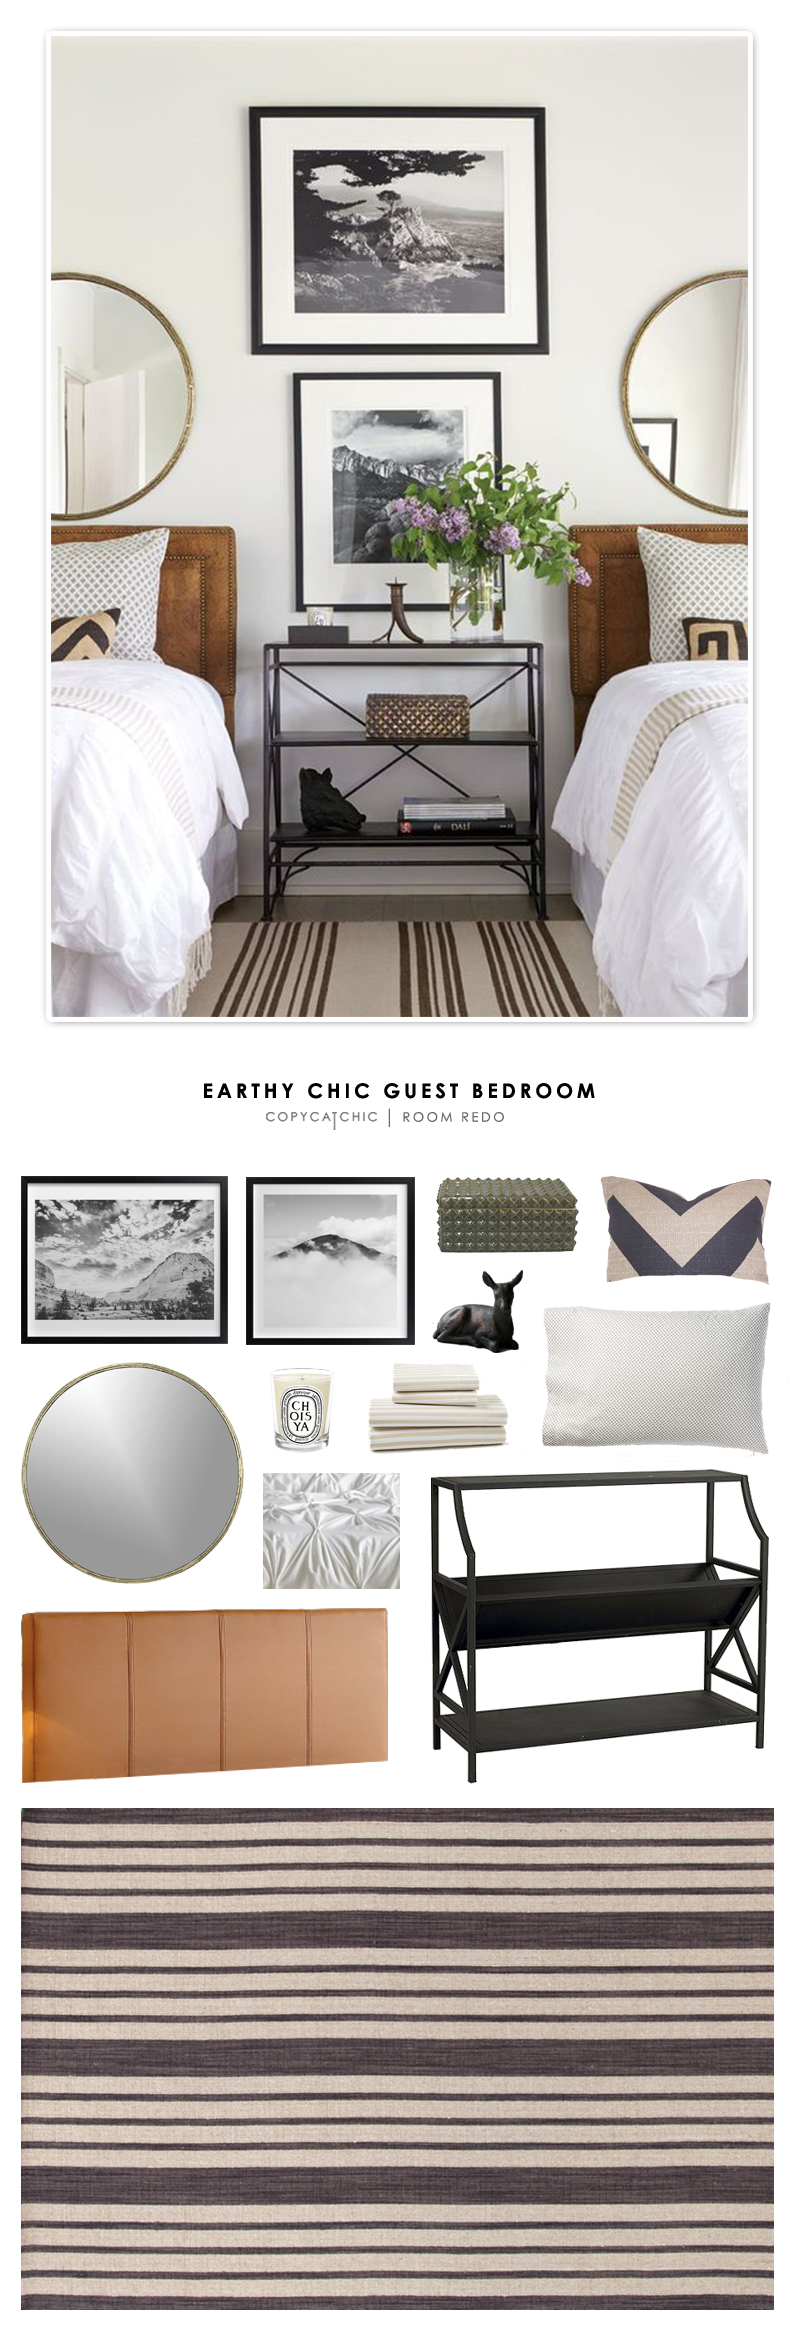 copy cat chic copy cat chic room redo earthy chic guest